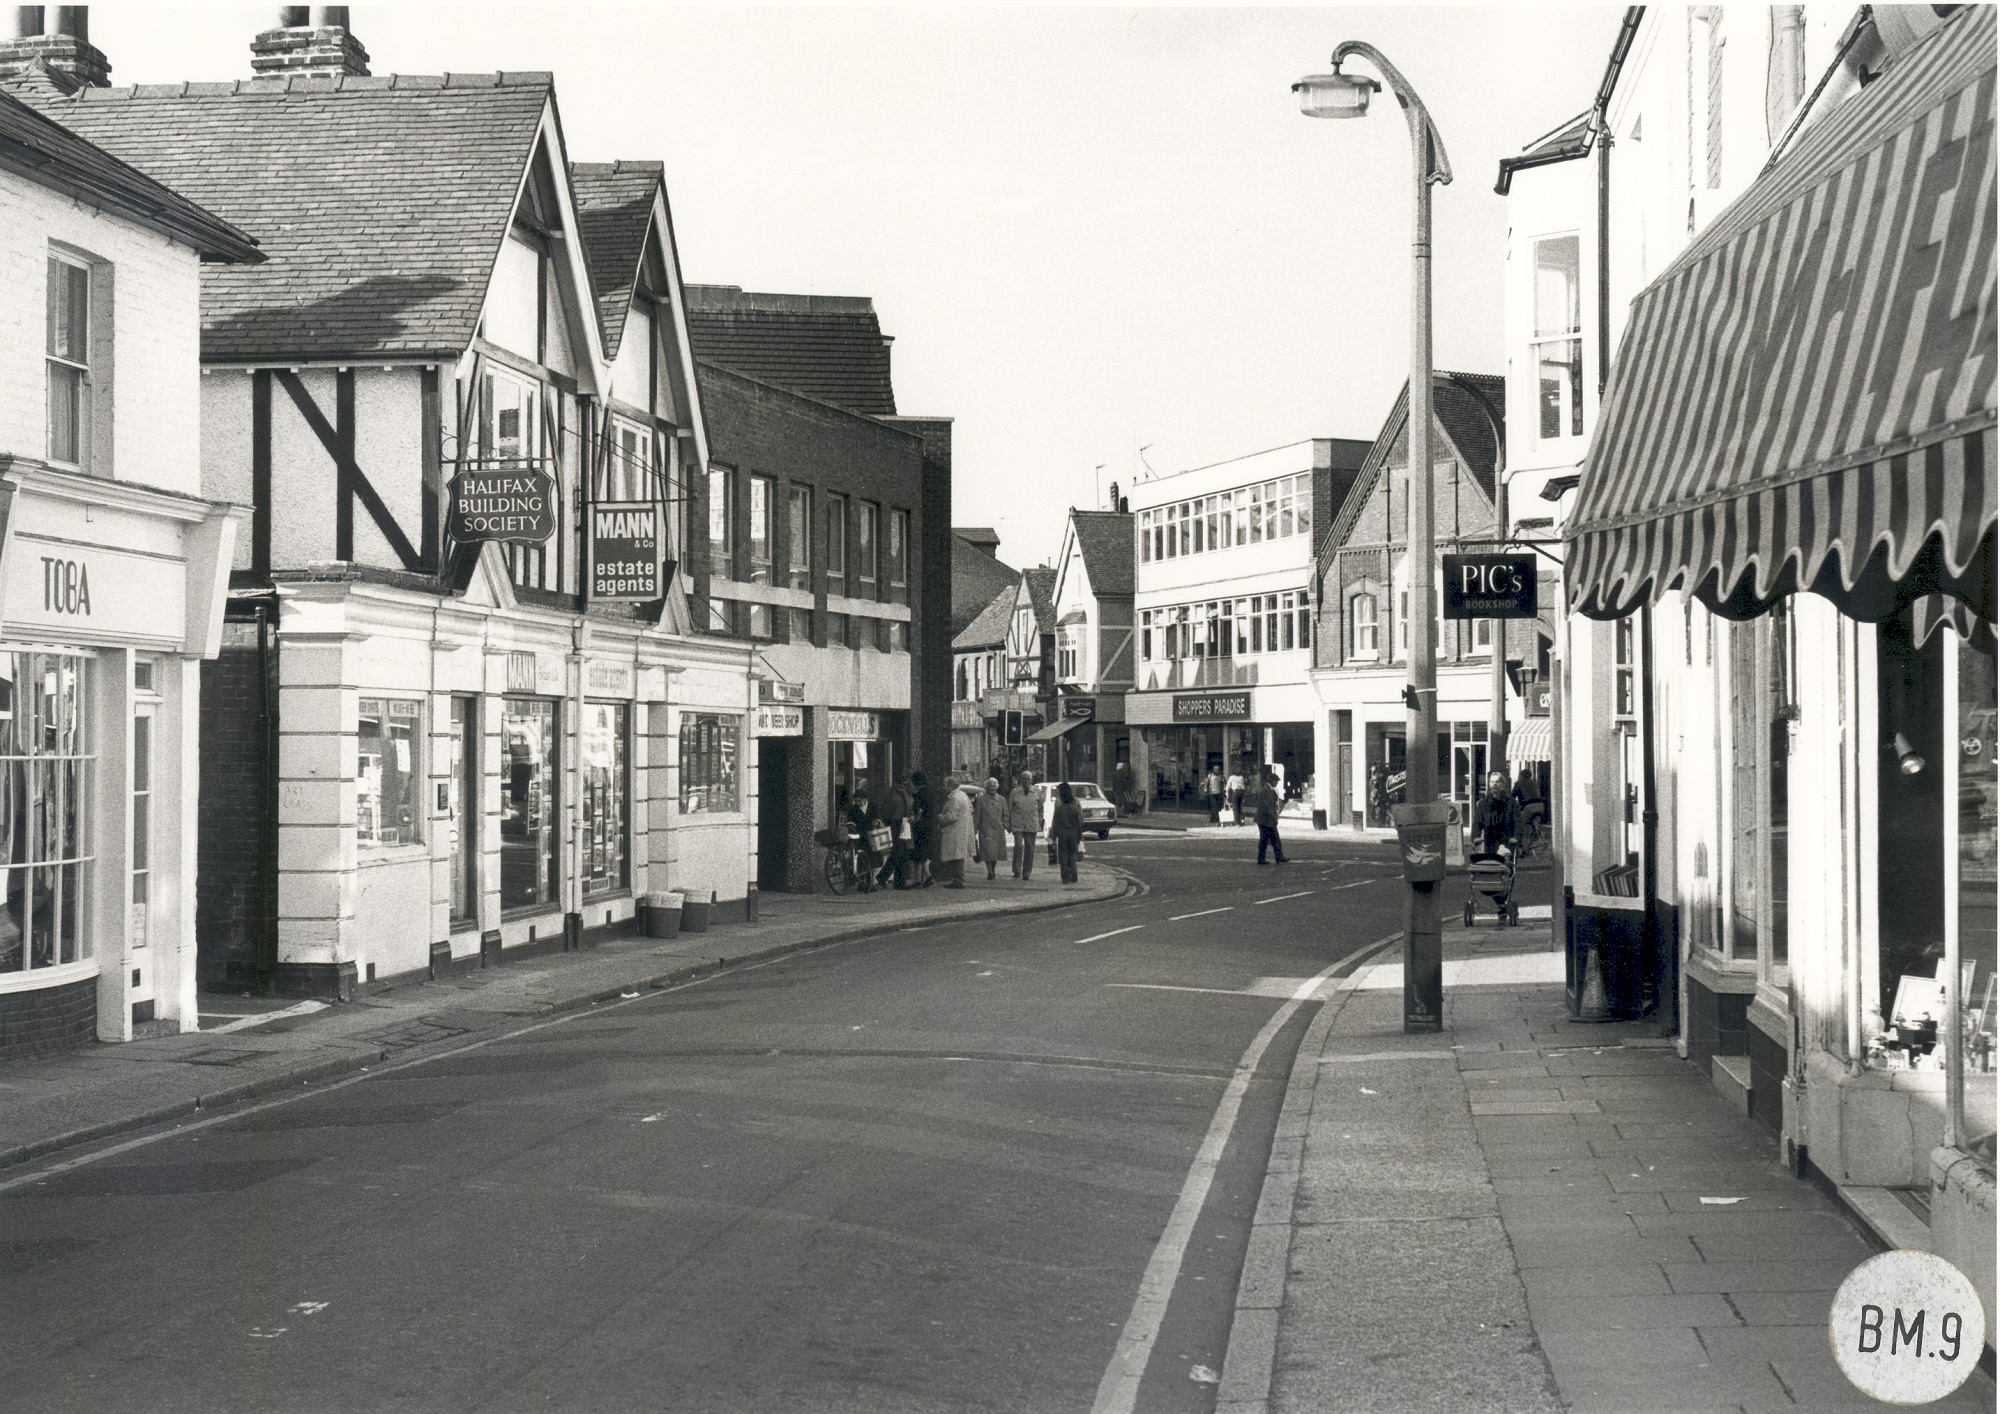 Black & white photograph of west end of Baker Street looking west, with Toba and Mann & Co. on left and part of Church Street in background including fish and chip shop, Shoppers Paradise & former Sainsbury's building, 1978.